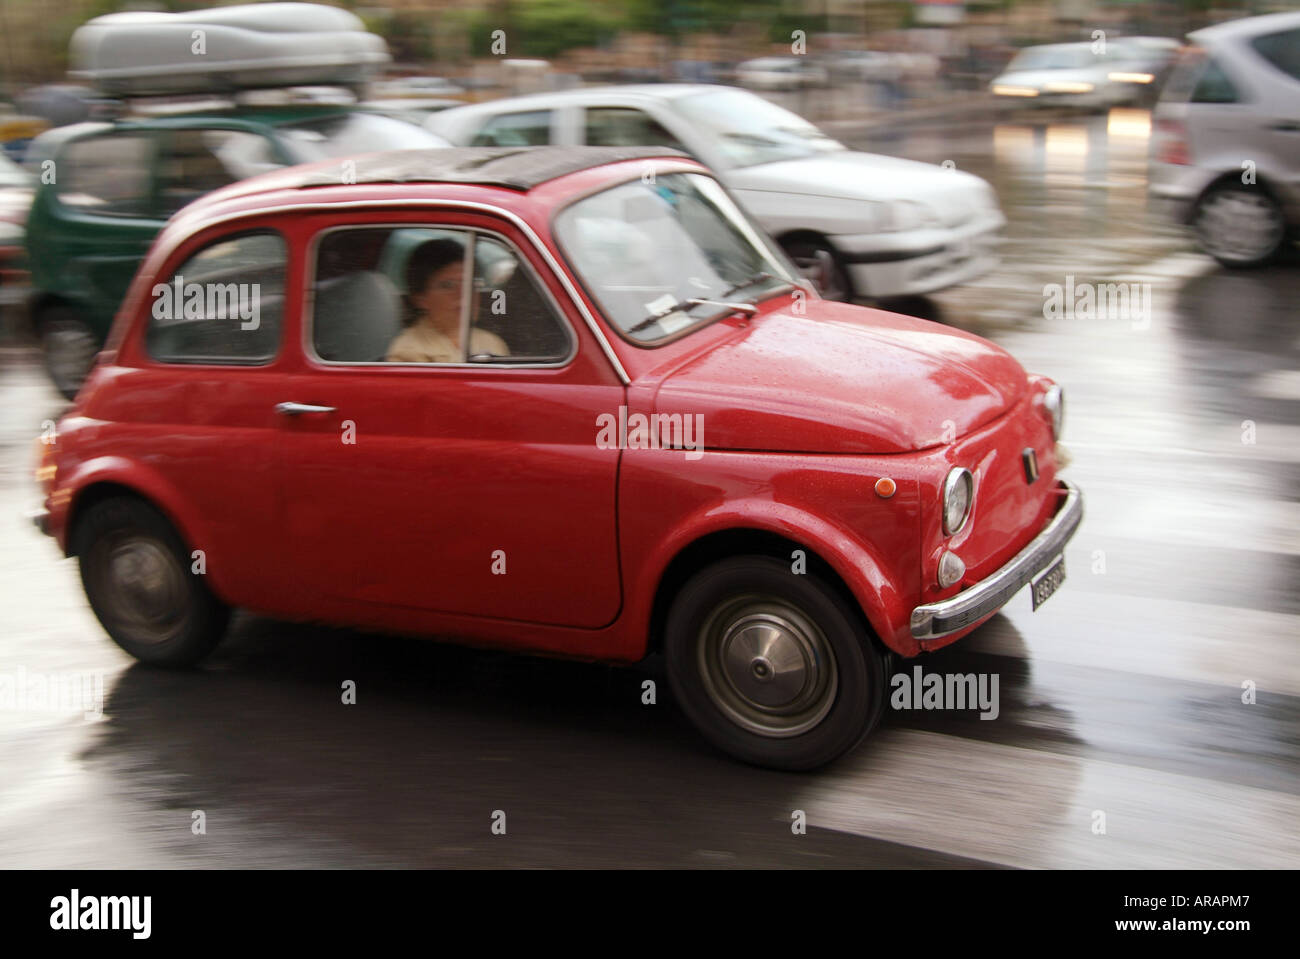 Fiat 500 Italian Small Car City Small Tiny Little European